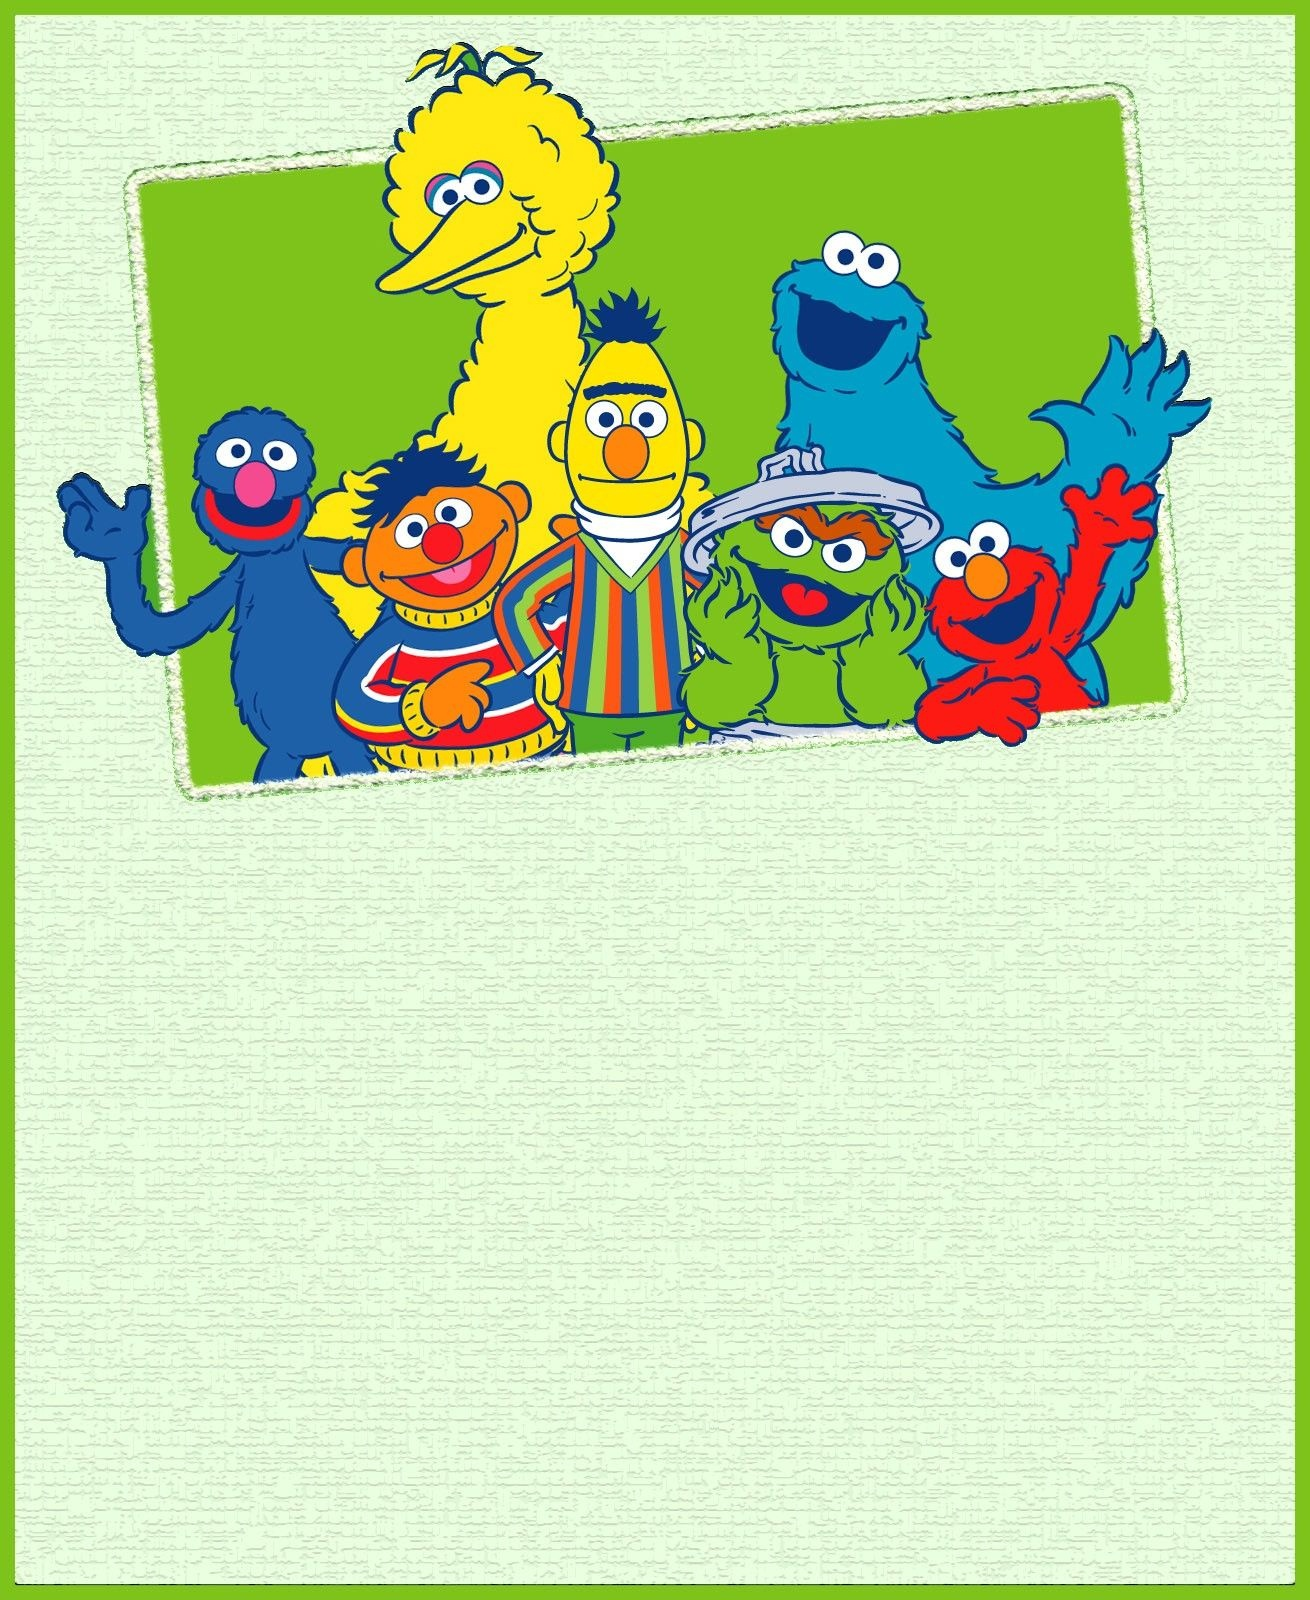 Printable Sesame Street Party Invitation Card | Jacob's 1St Birthday - Free Sesame Street Printables